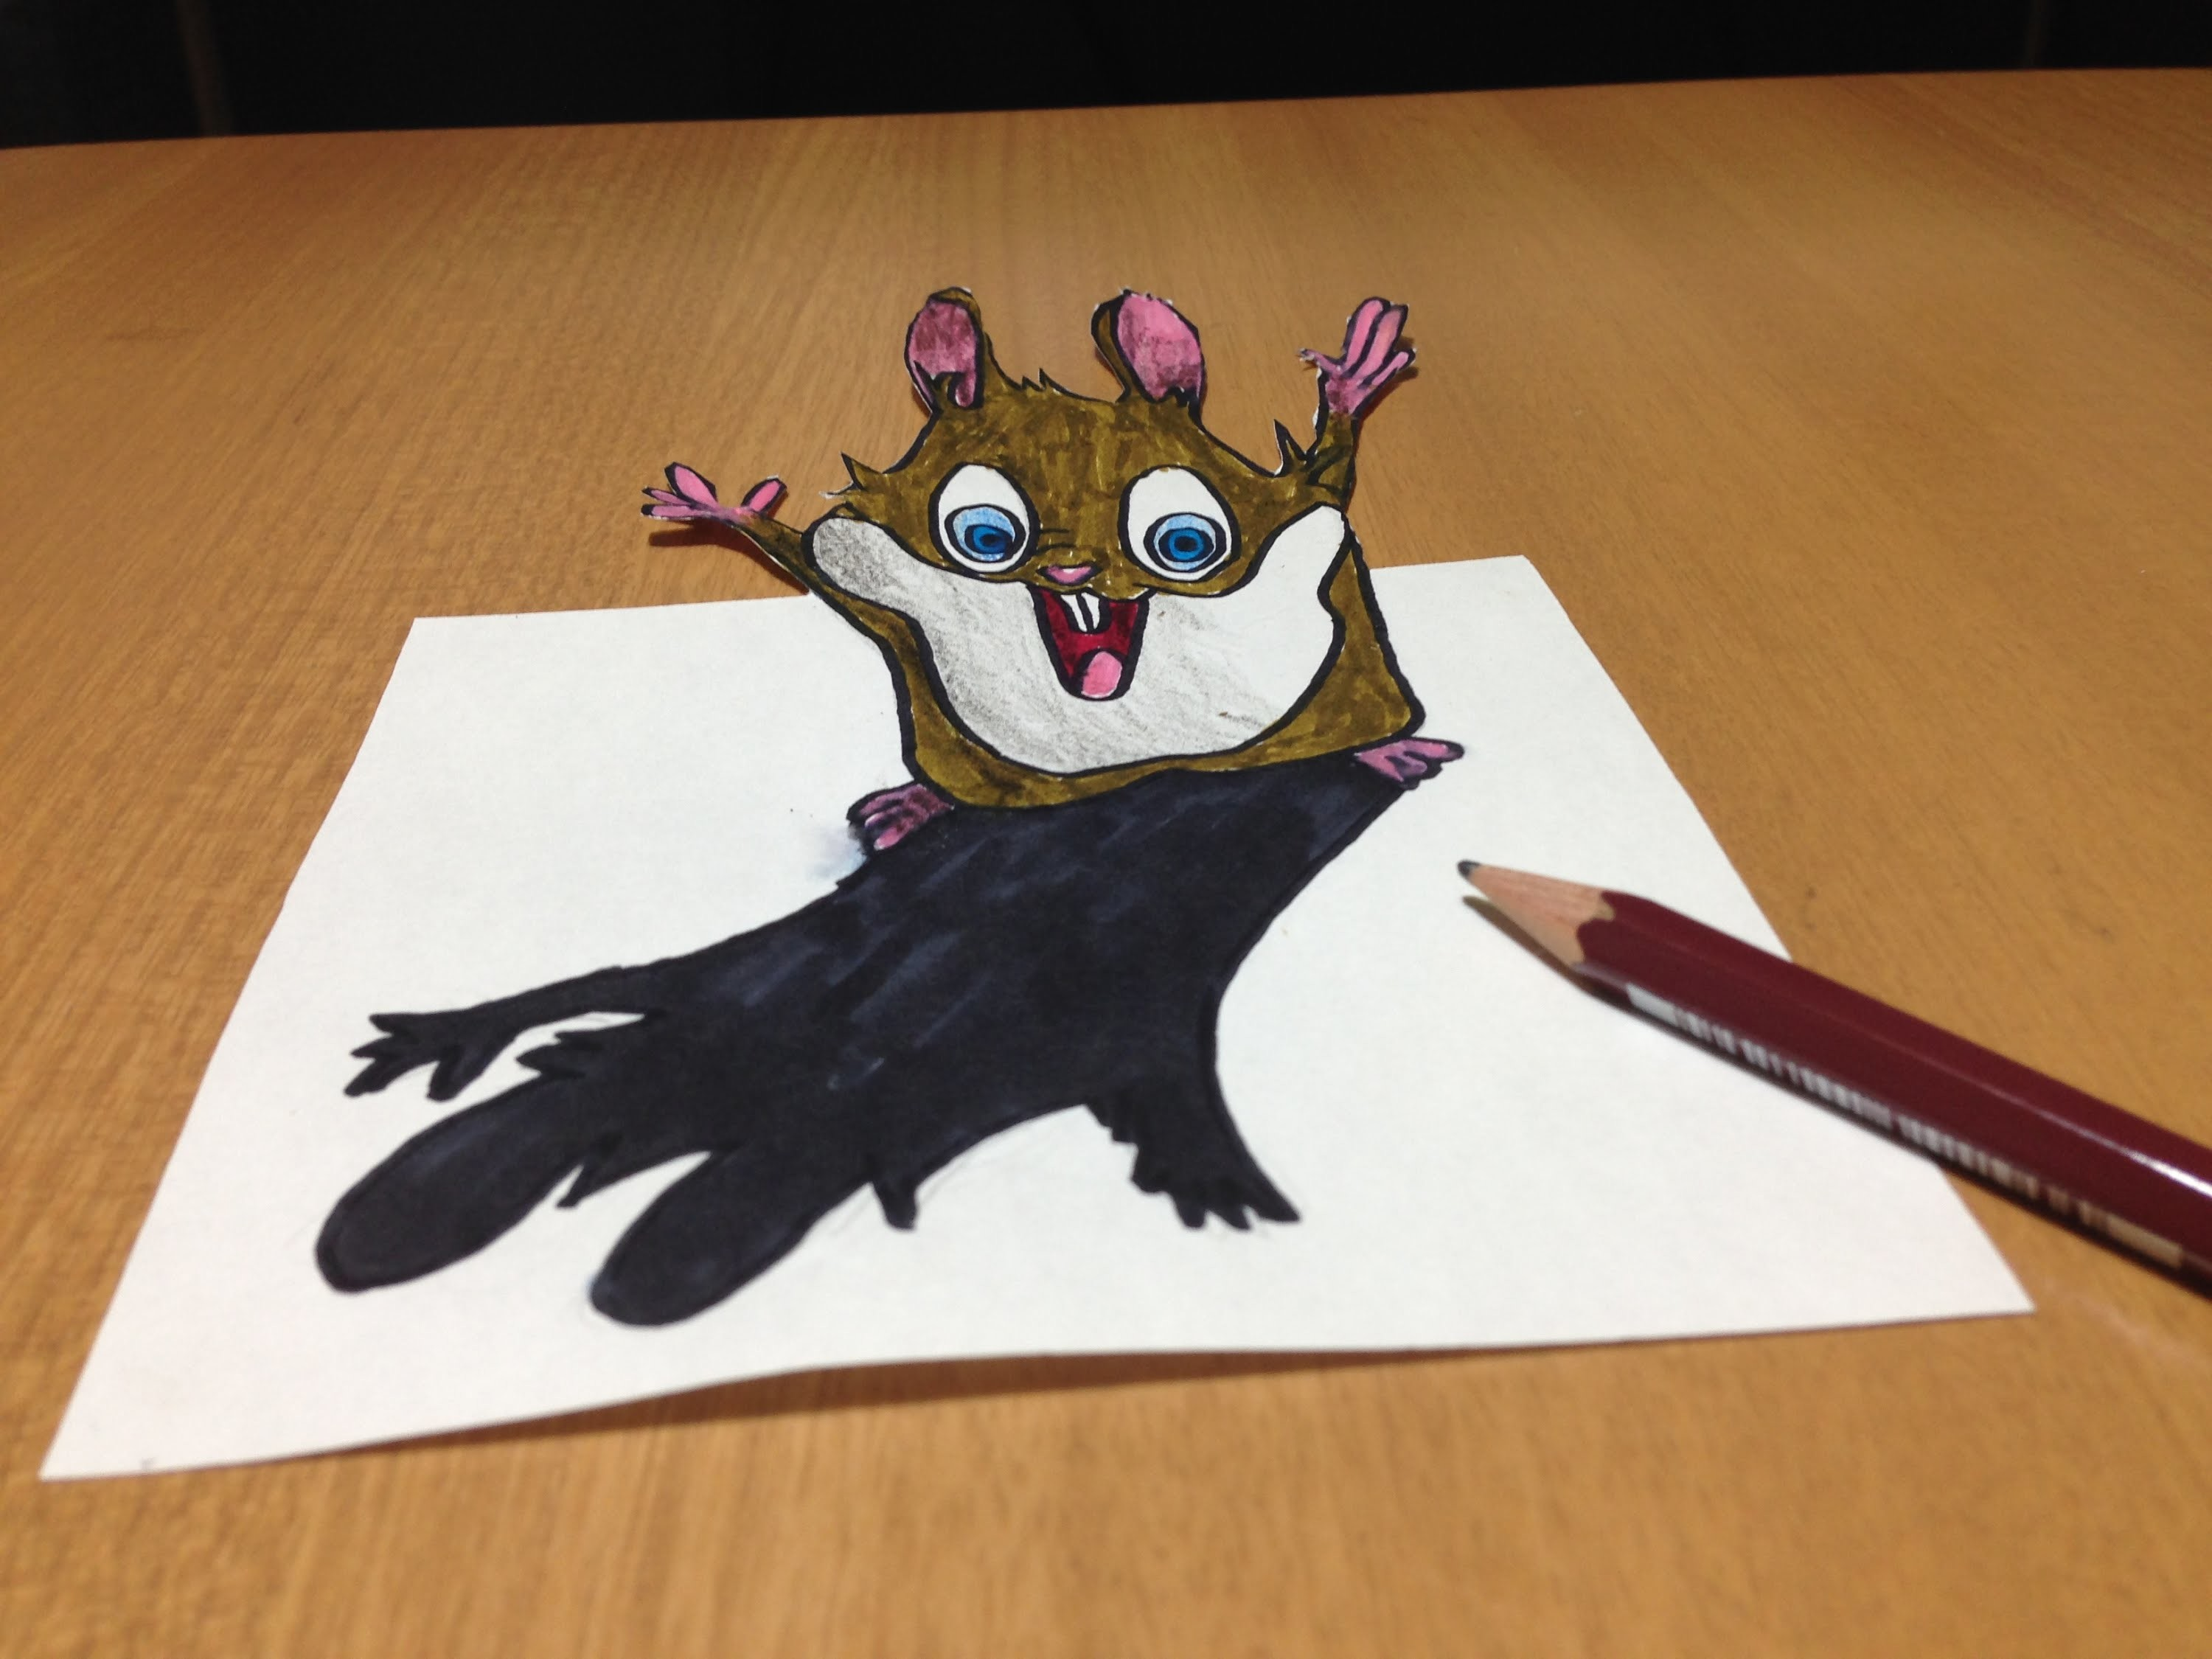 Freehand 3d Cute Hamster Drawing Anamorphic Illusion Time Lapse